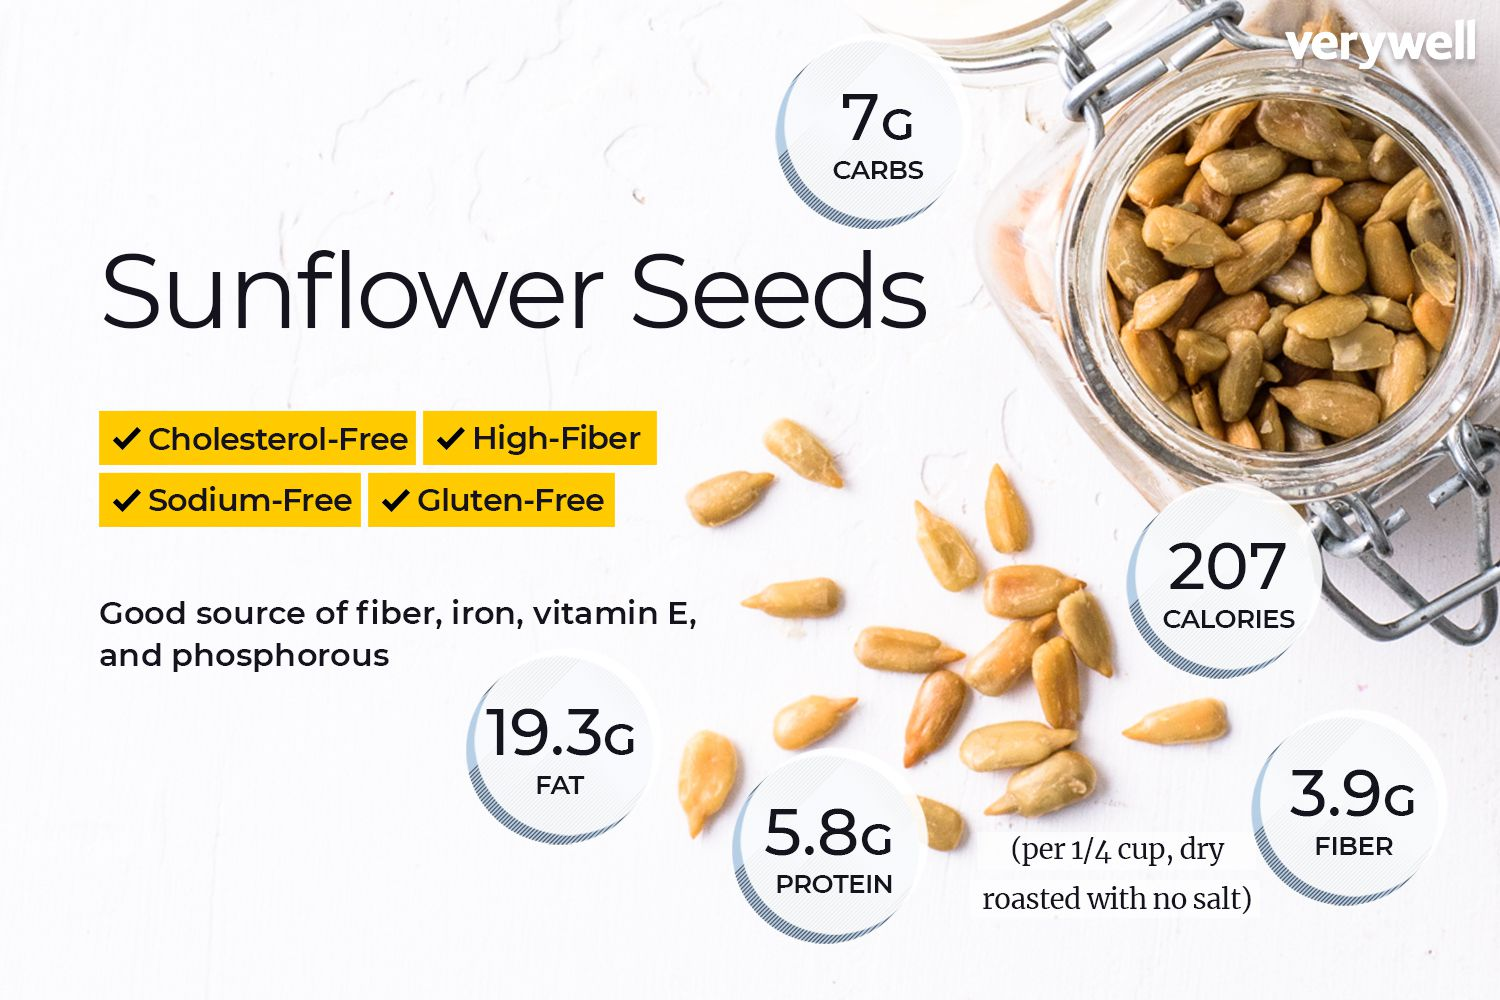 Sunflower Seed Nutrition Facts And Health Benefits